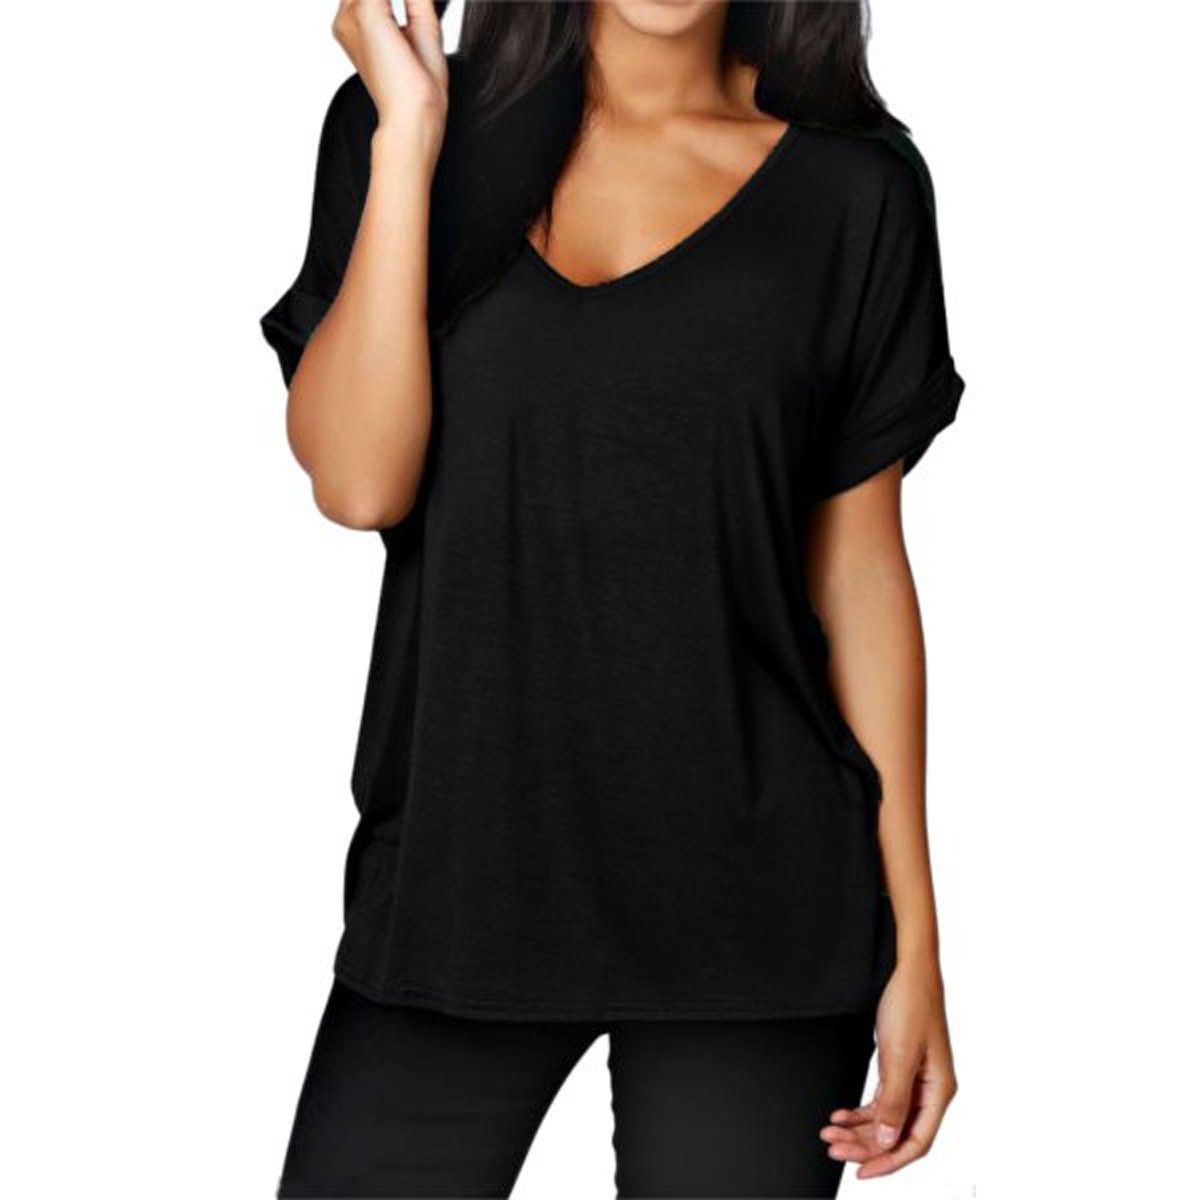 Summer Blusas Large Size t-shirt women Tops 2018 Fashion Solid Color Tee Shirt Casual V Neck Short Sleeve T-shirt Plus Size 5XL